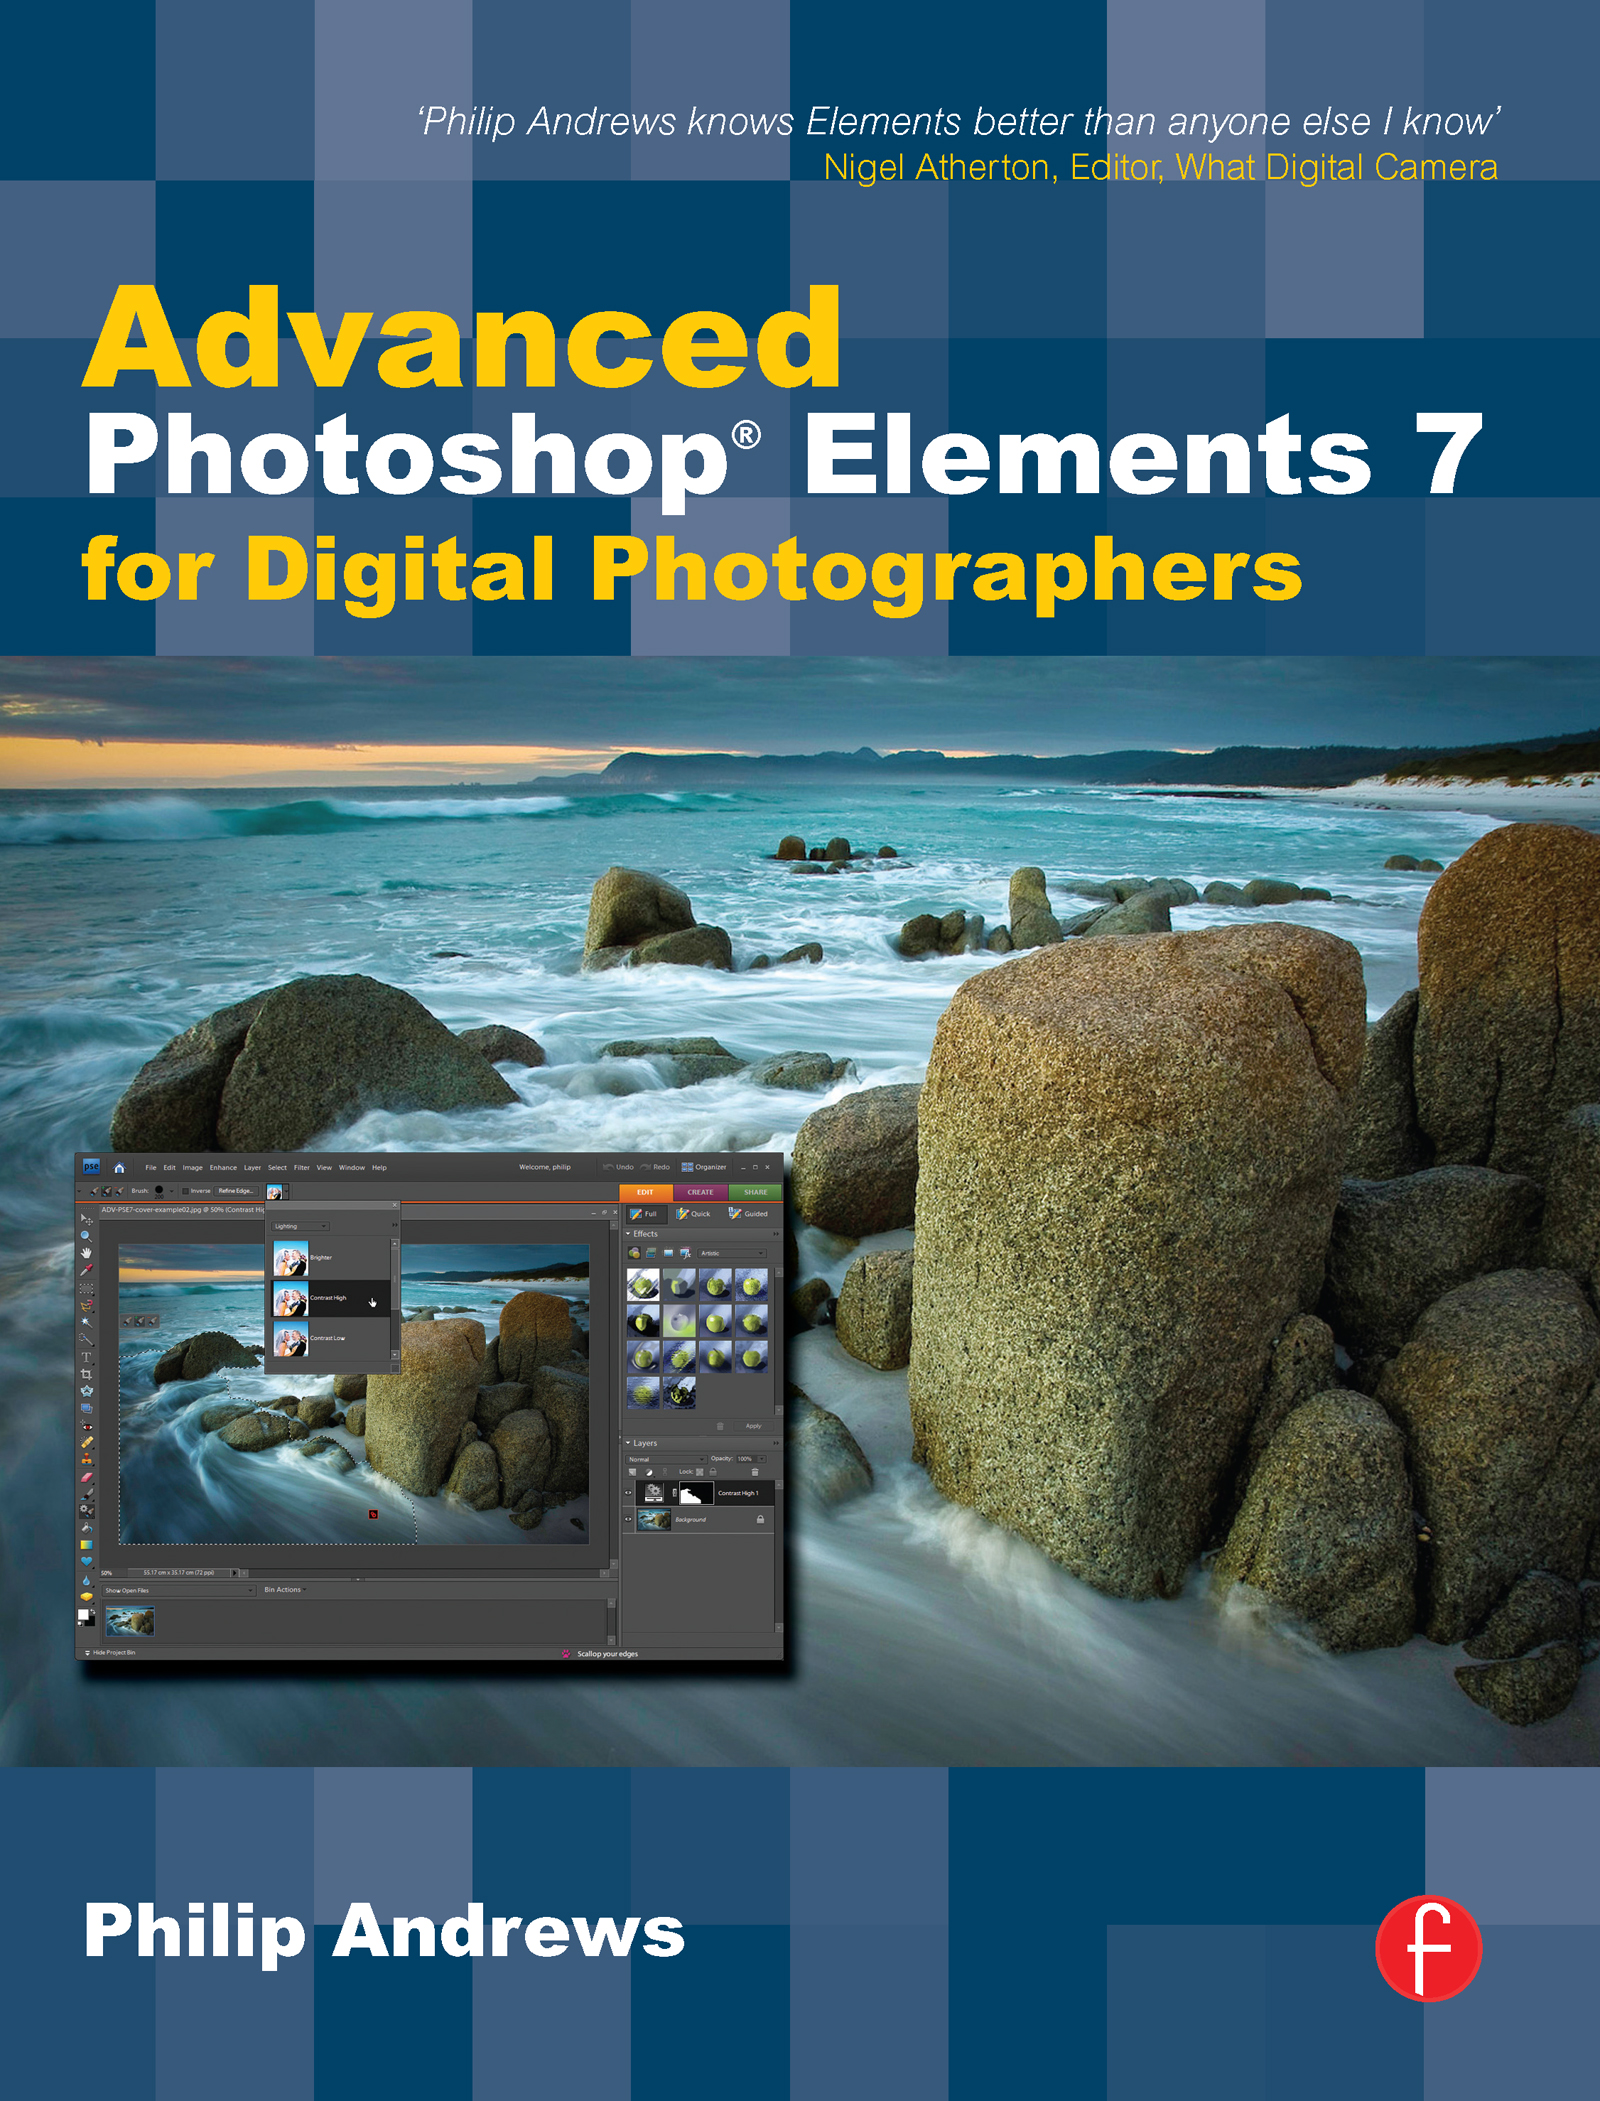 Advanced Photoshop Elements 7 for Digital Photographers: Advanced Photoshop Elements 7 for Digital Photographers book cover